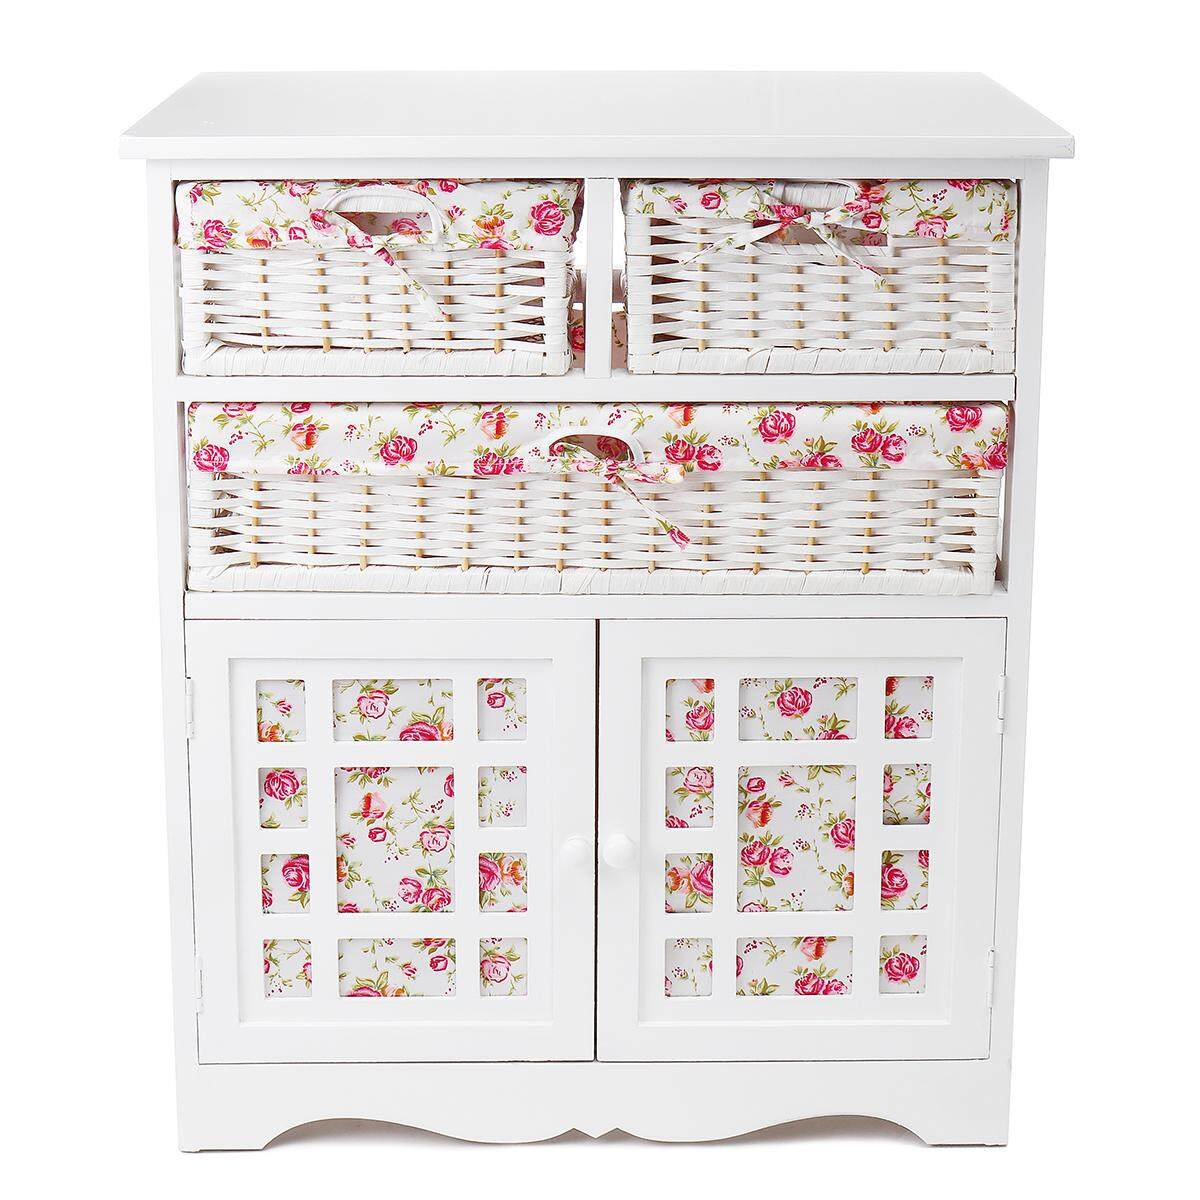 White Wicker Basket Storage Unit Chic Bedside Table Cabinet Chest of Drawers